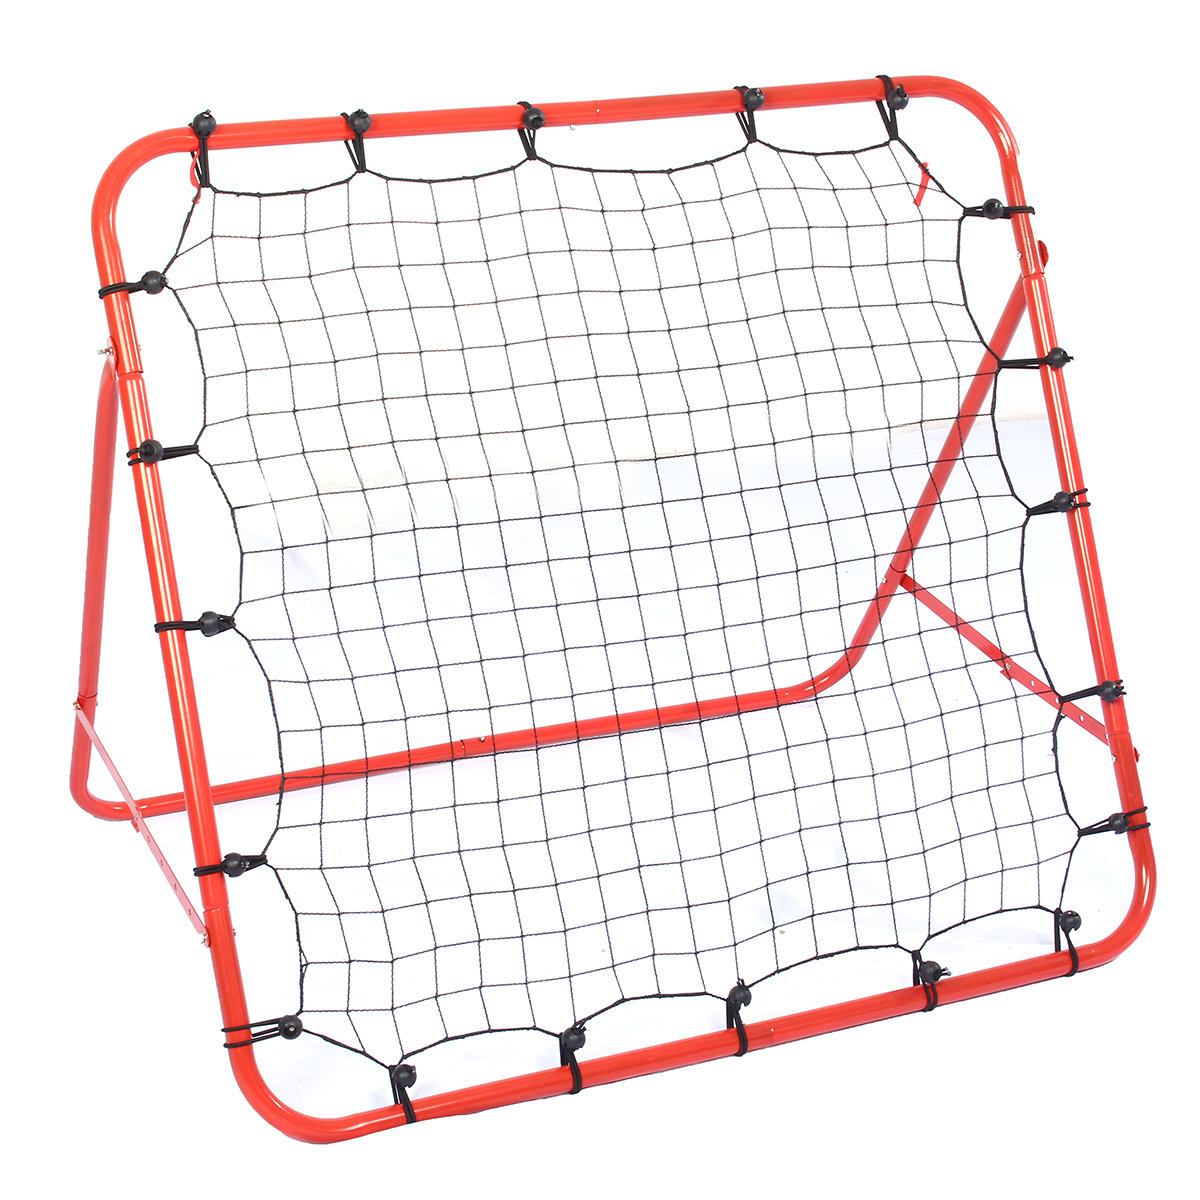 Calcio Baseball Training Esercizio Stander Rebound Target Mesh Net Sport all'aperto Entertainm - 2